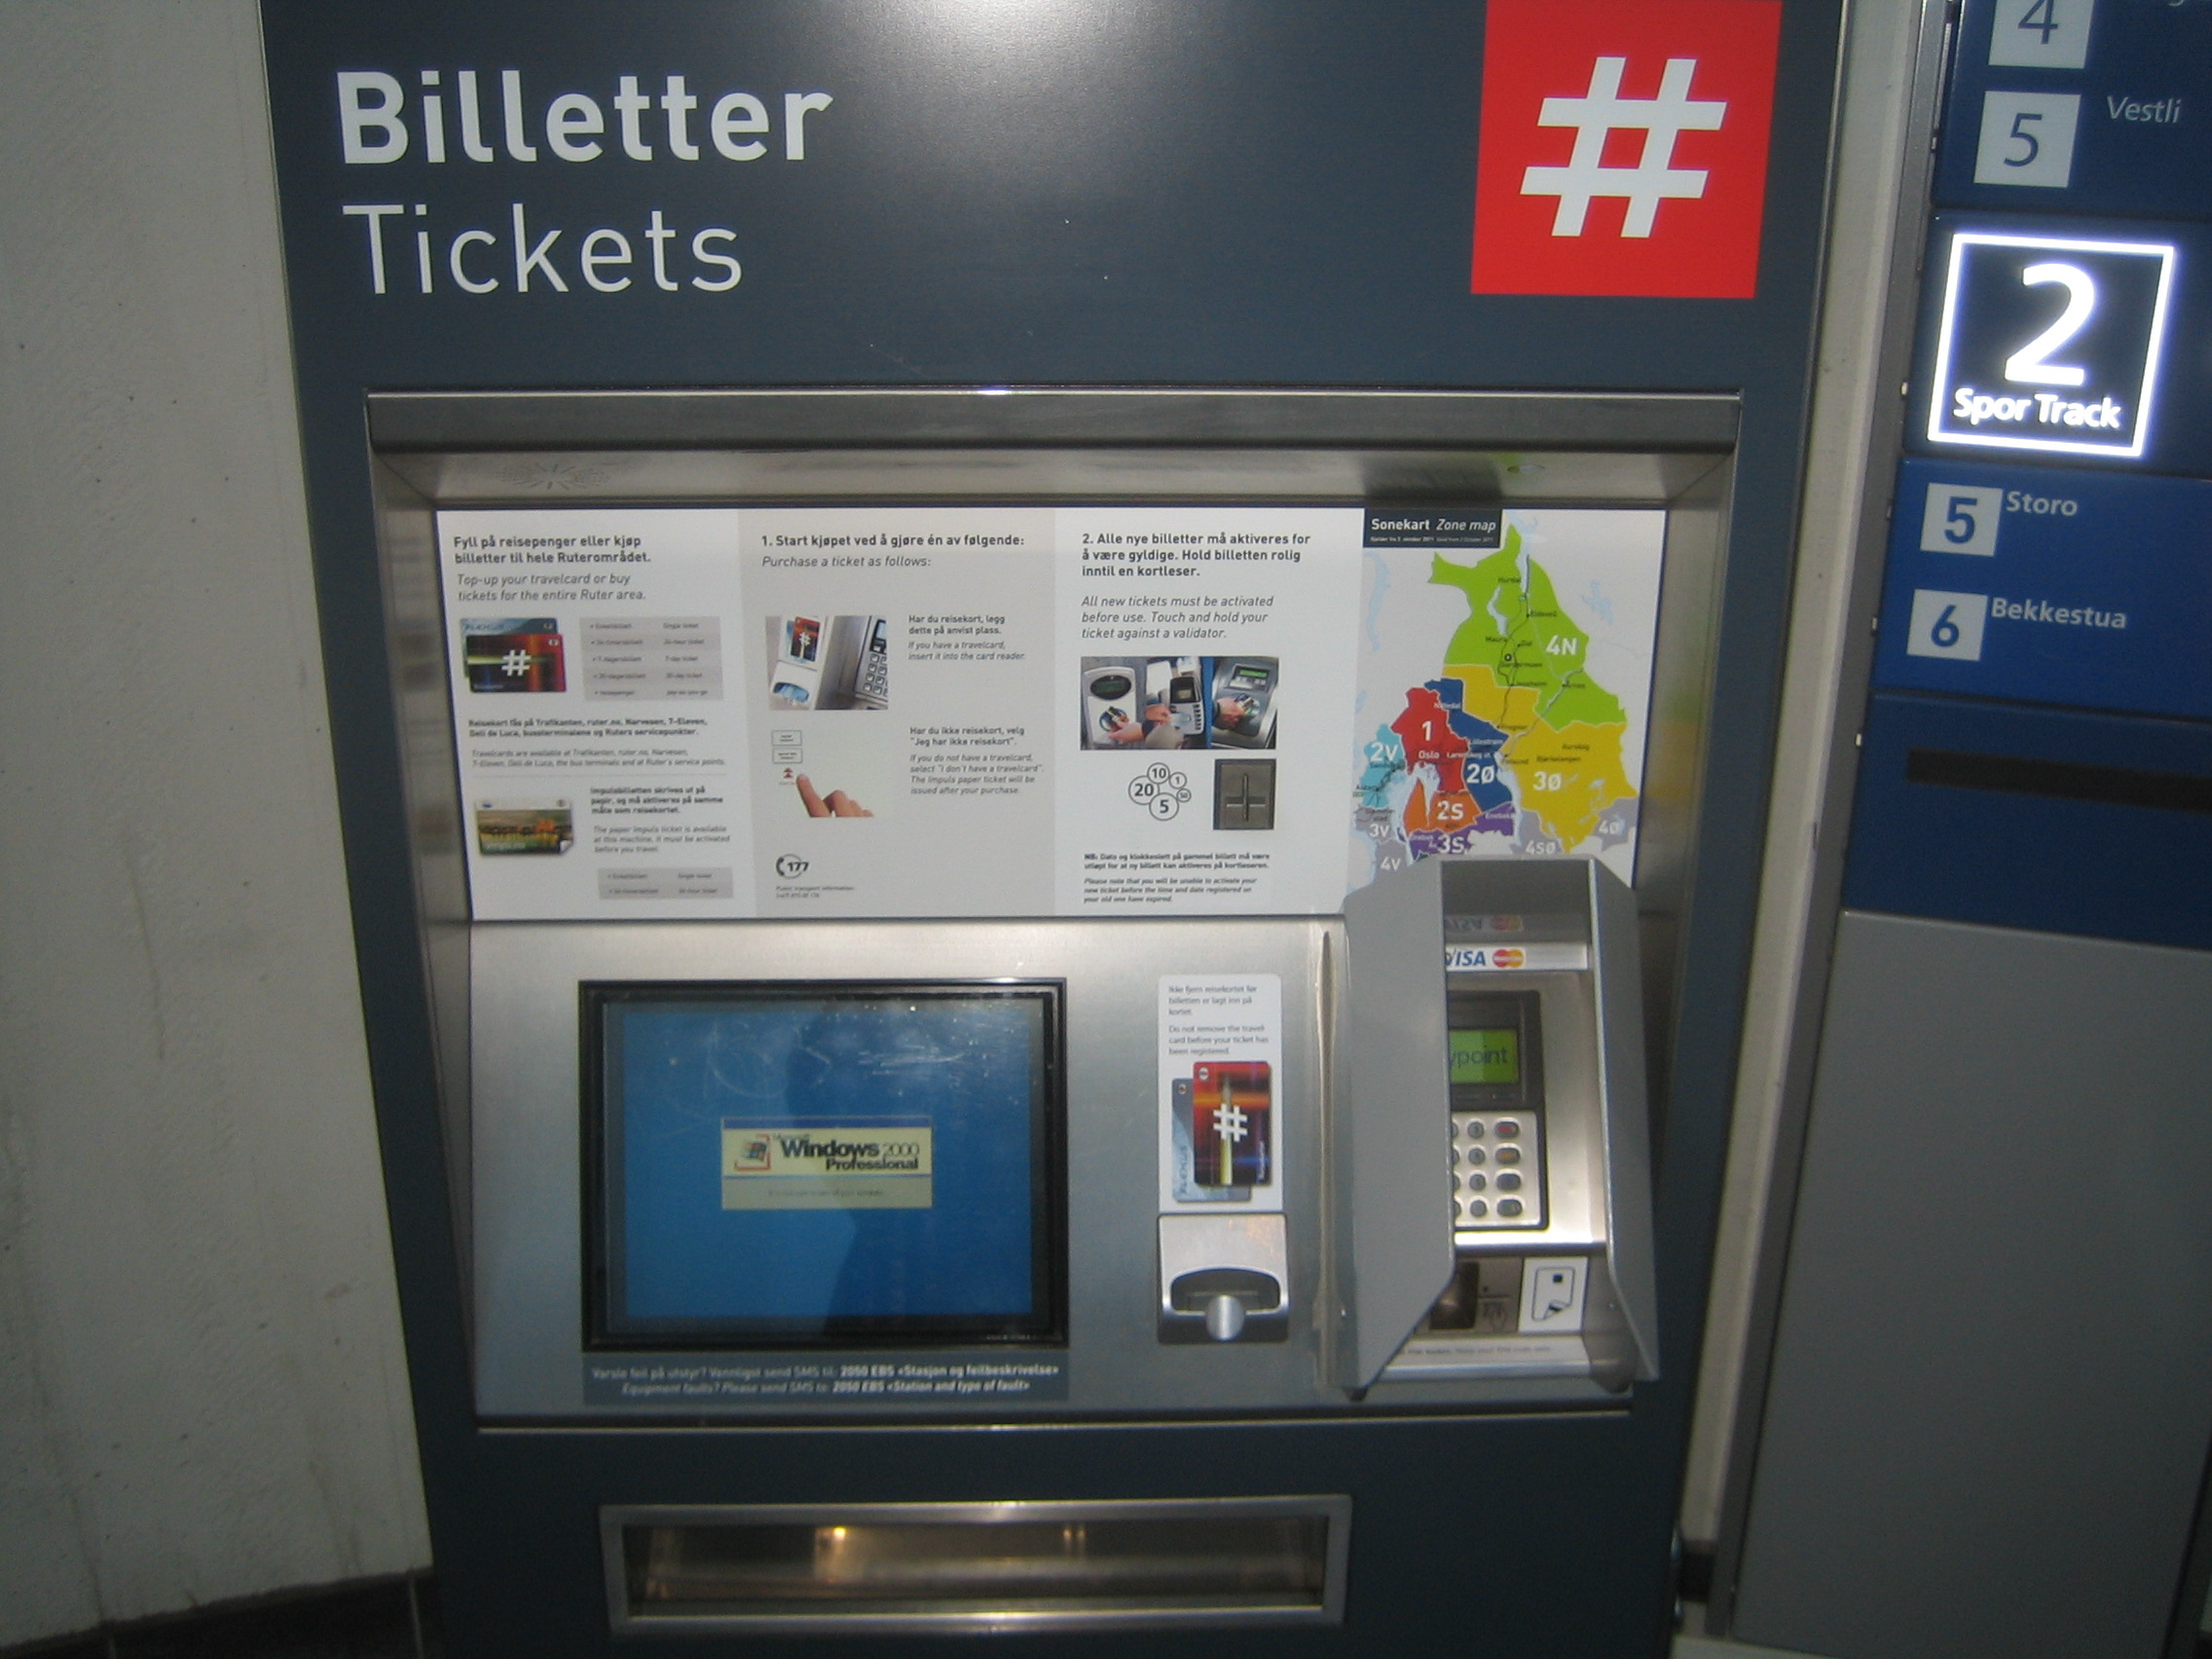 [foto av billettautomat]